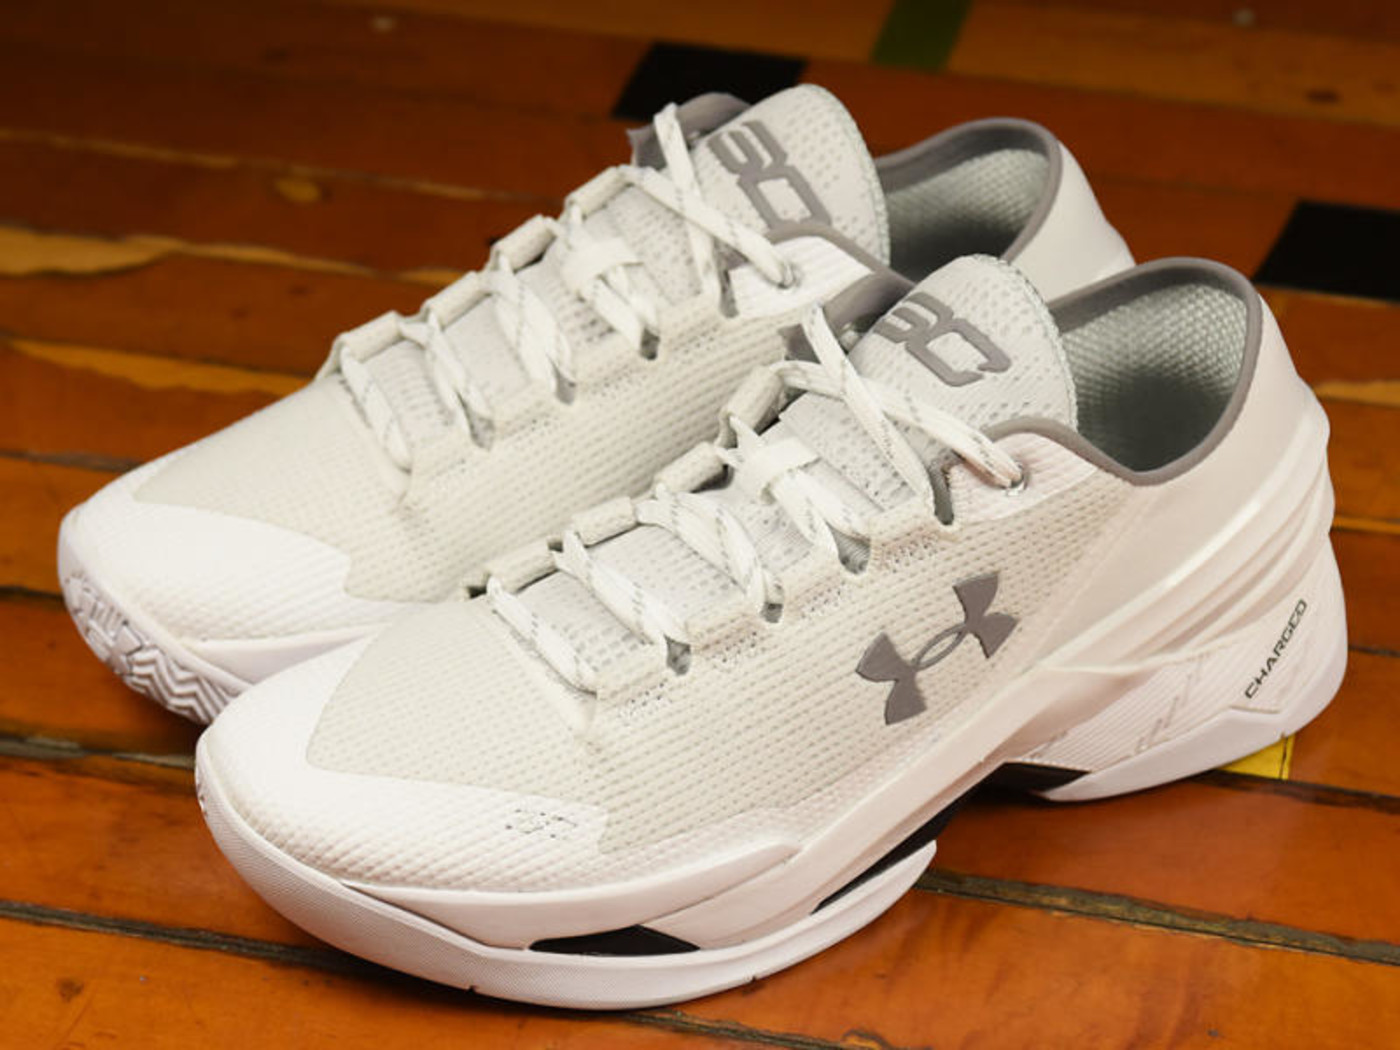 Steph Curry's White Sneakers